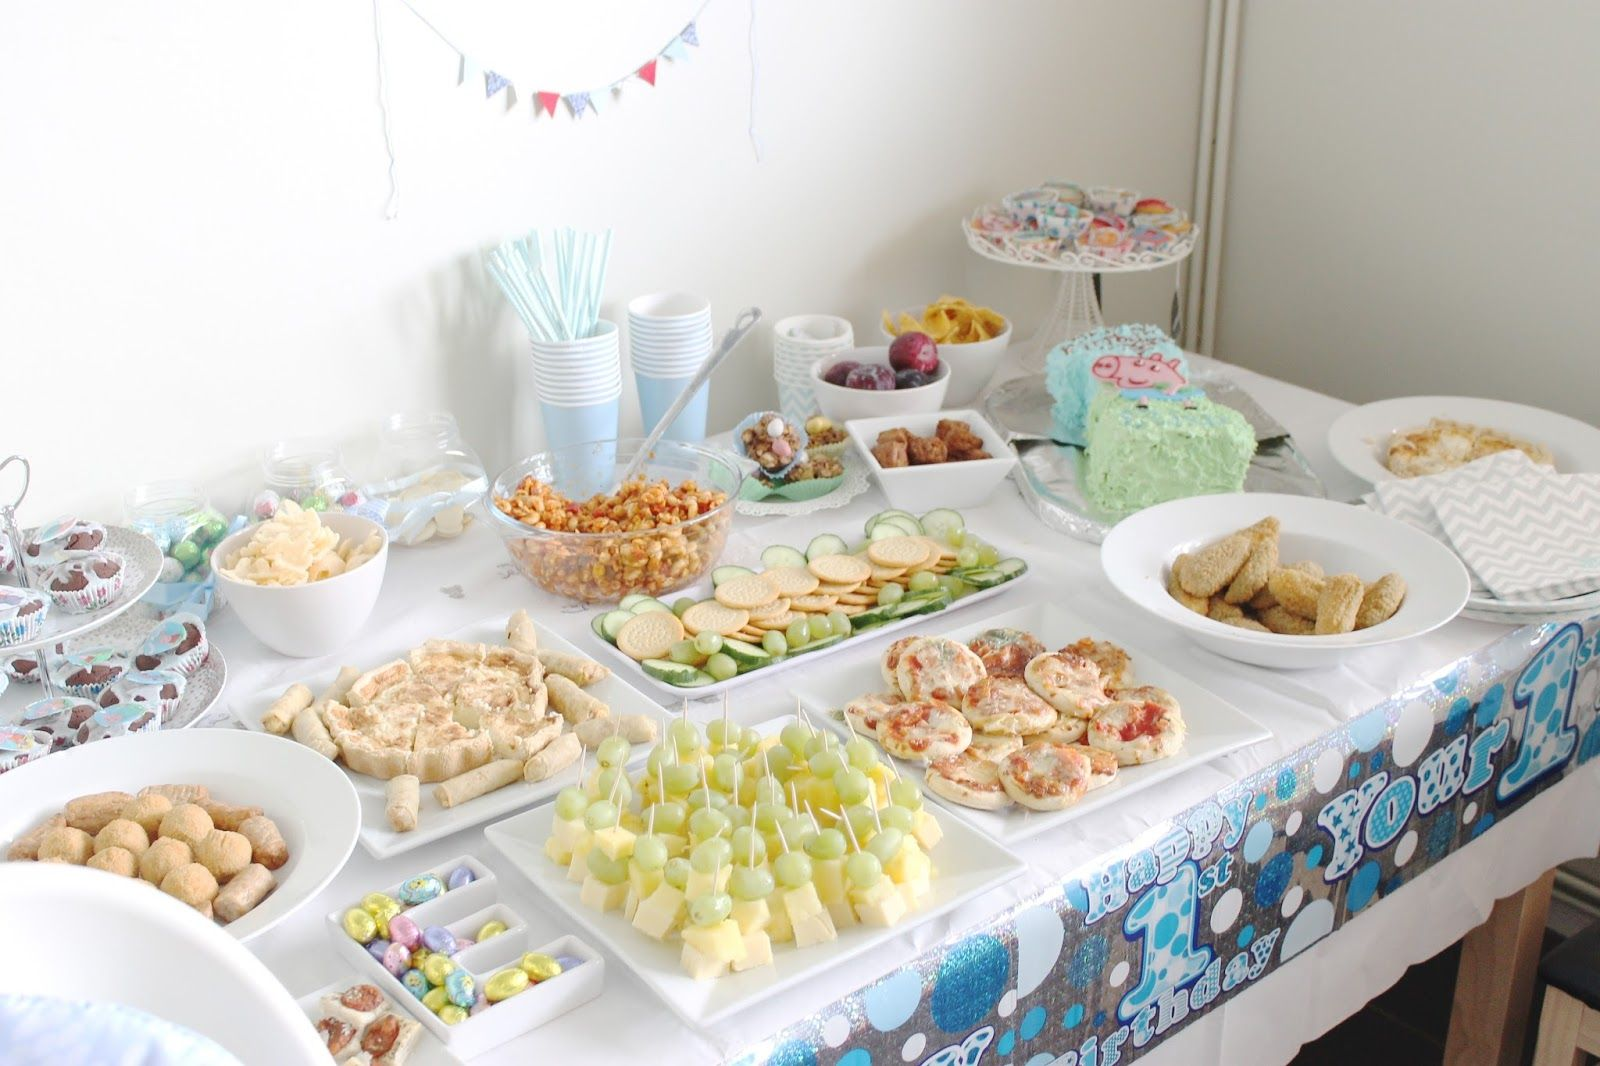 Ethans 1st Birthday: The Party & Decor! | Birthday party ...